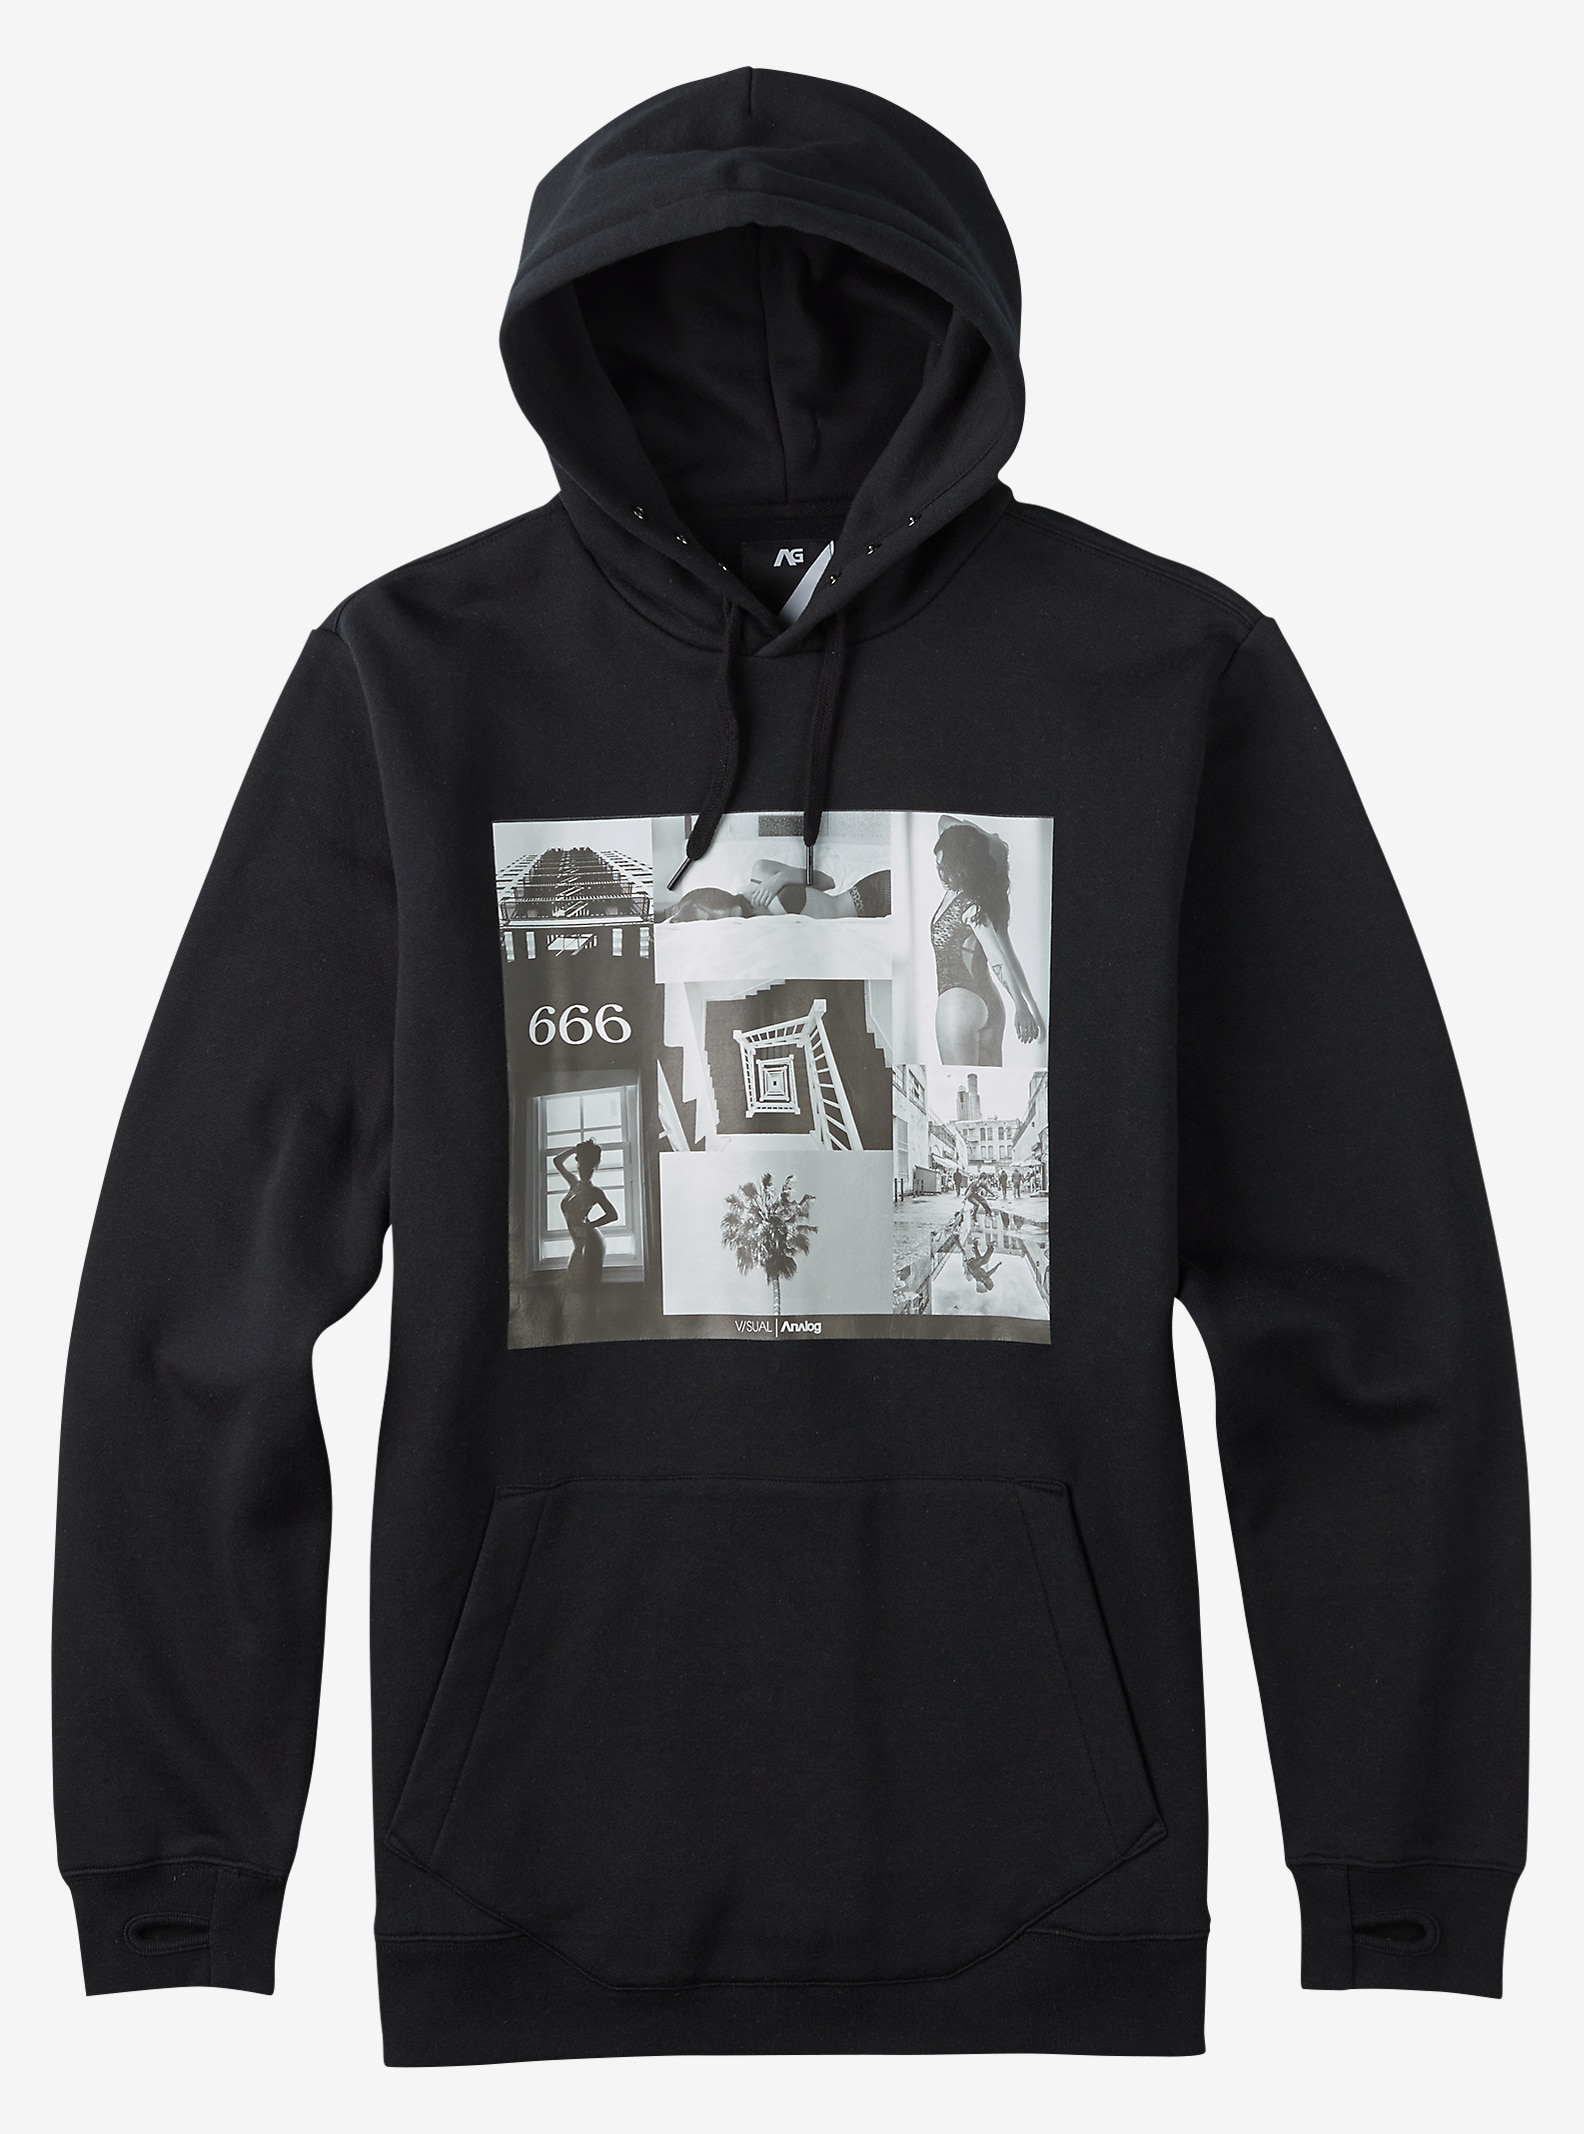 Analog Filter Hoodie shown in True Black PLA I